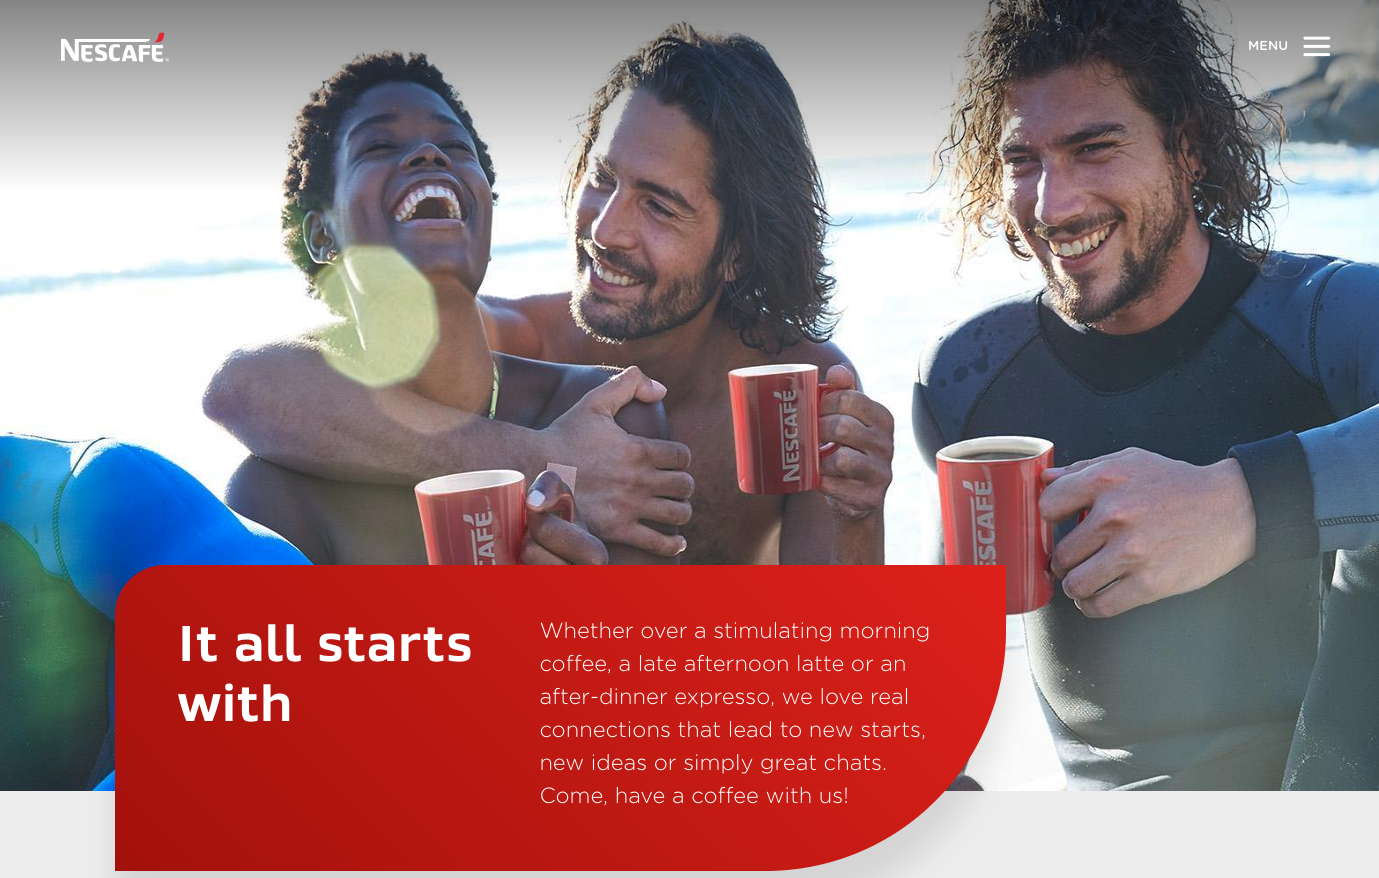 Nescafé's U.S. home page is also unique compared to other countries.